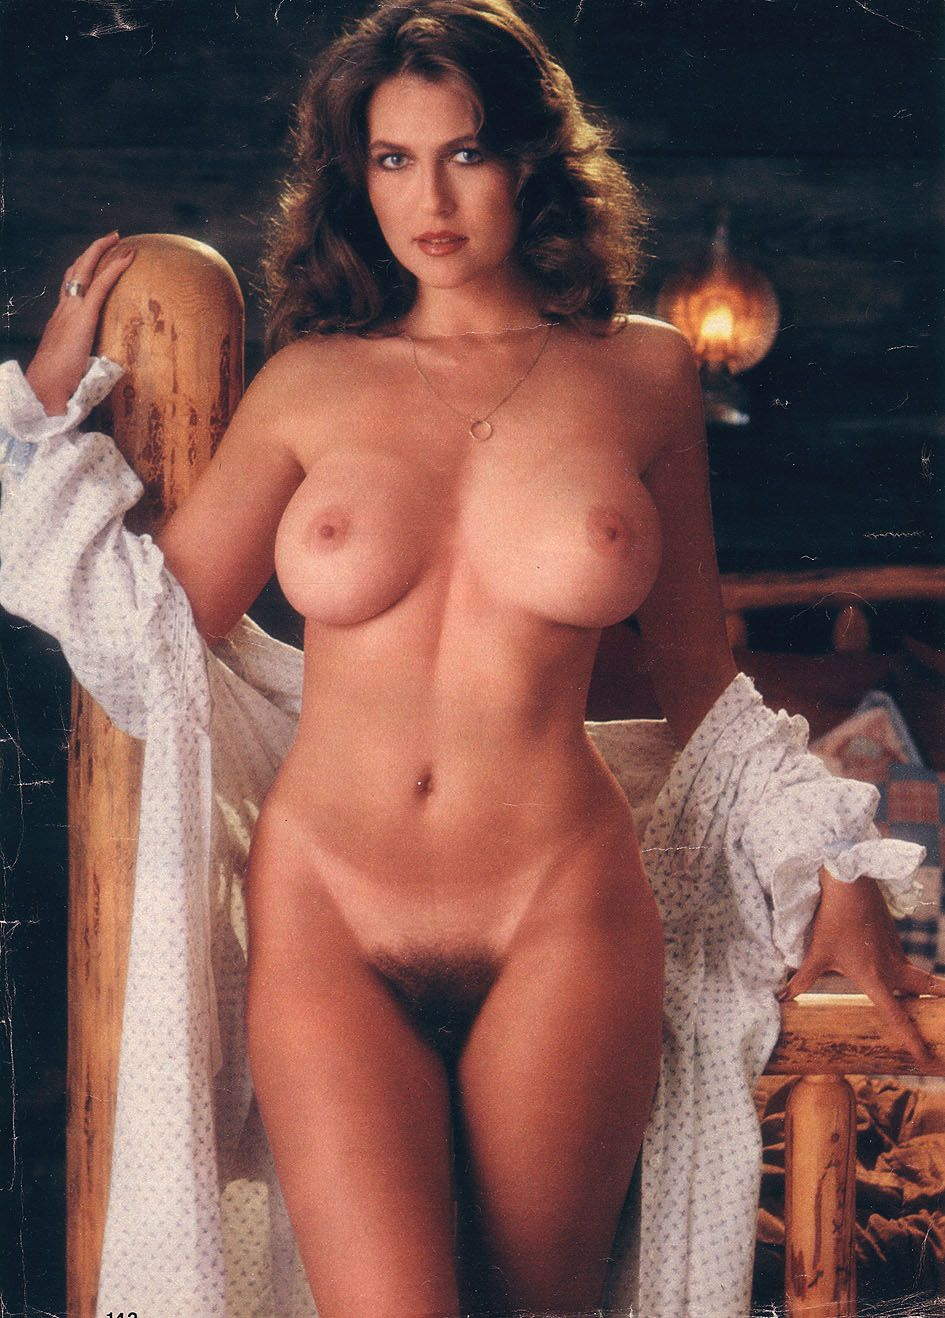 cathy larmouth | นางแบบ | pinterest | nude, penthouse girls and naked